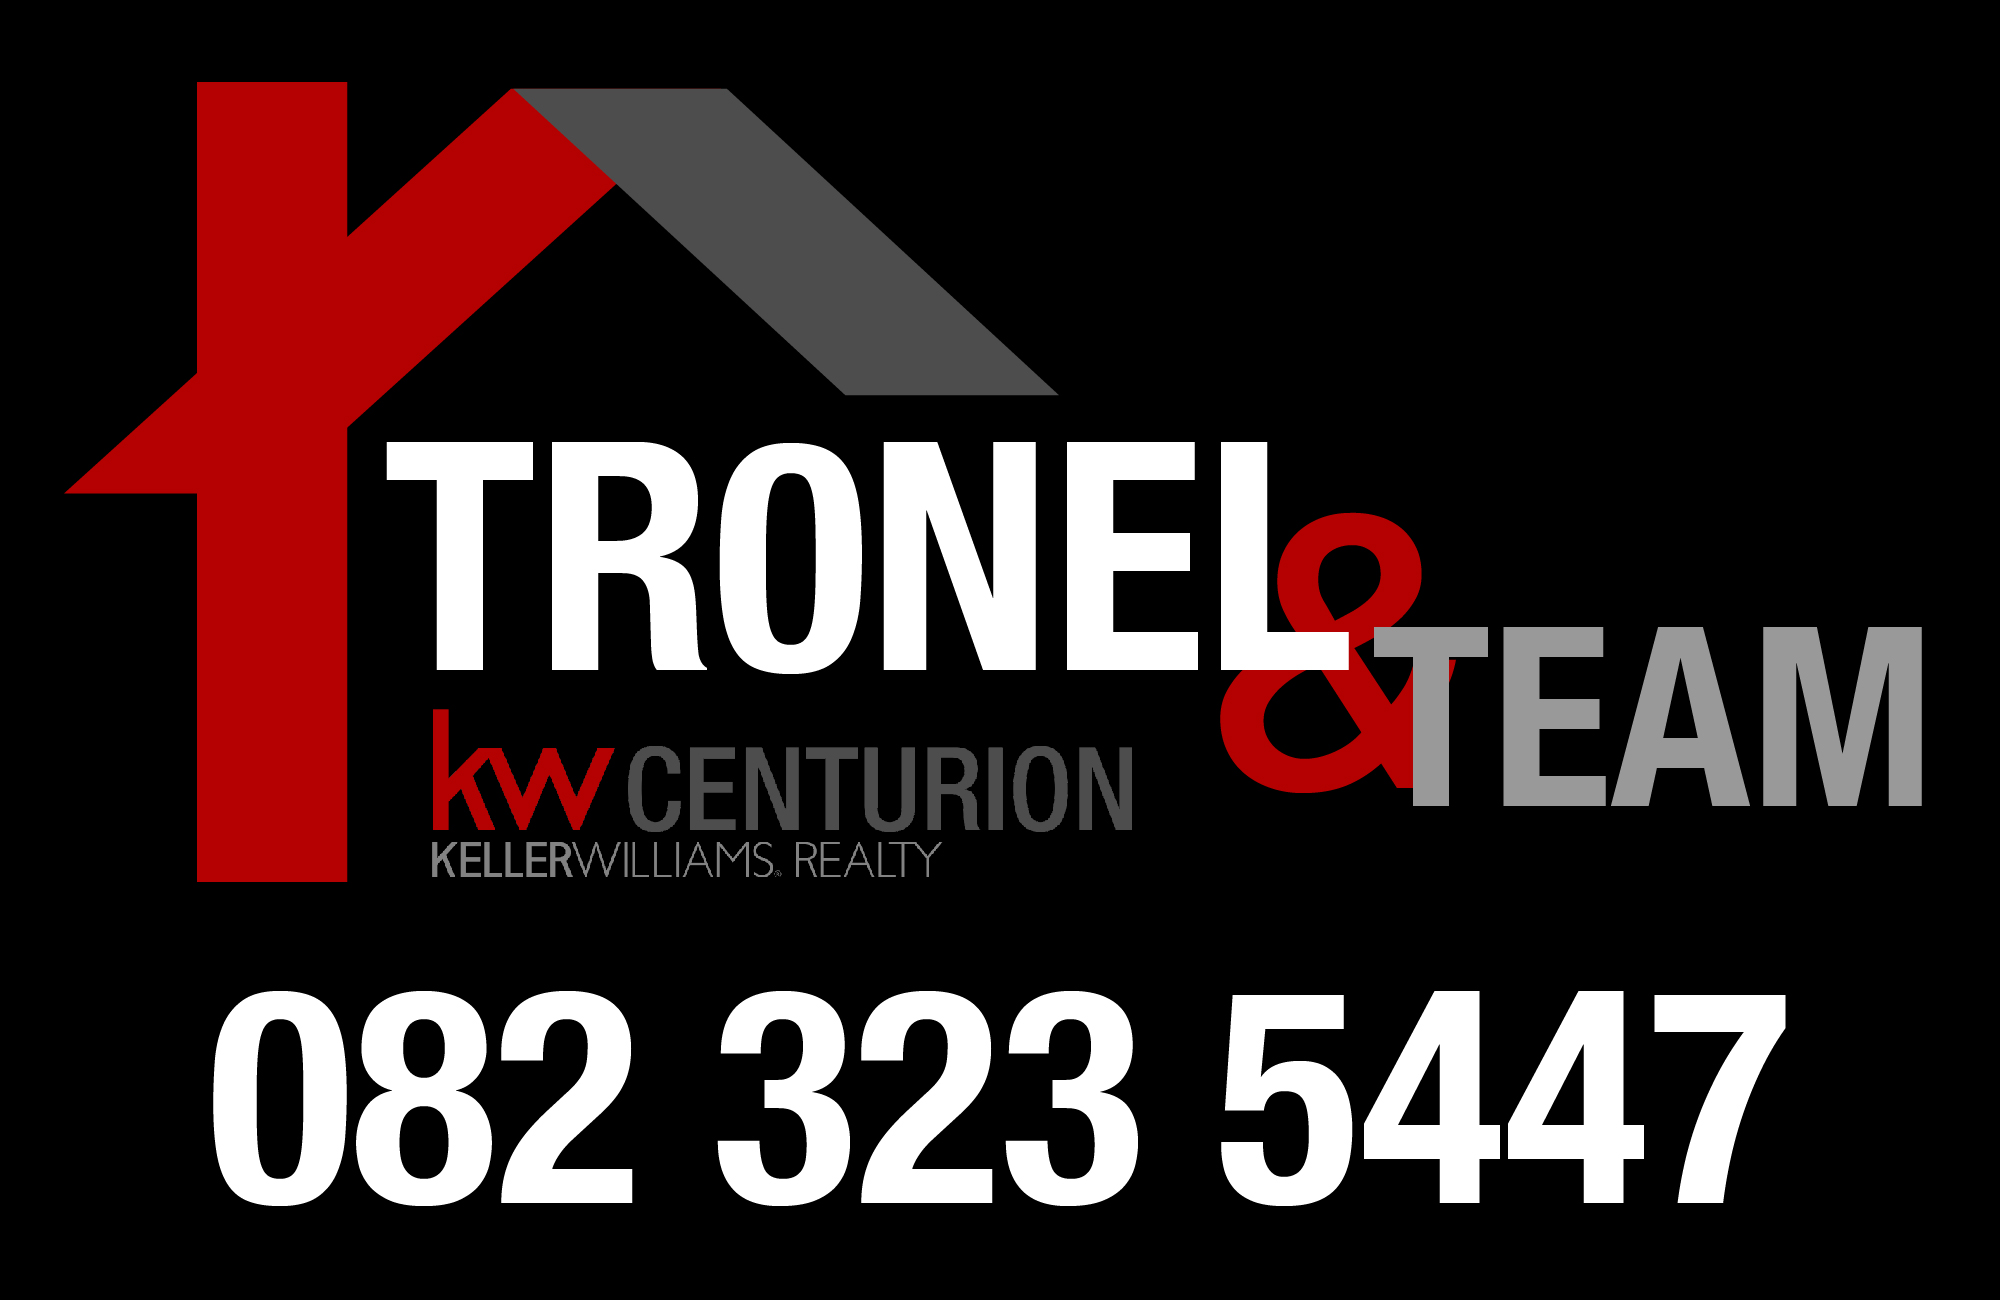 Tronel & Team